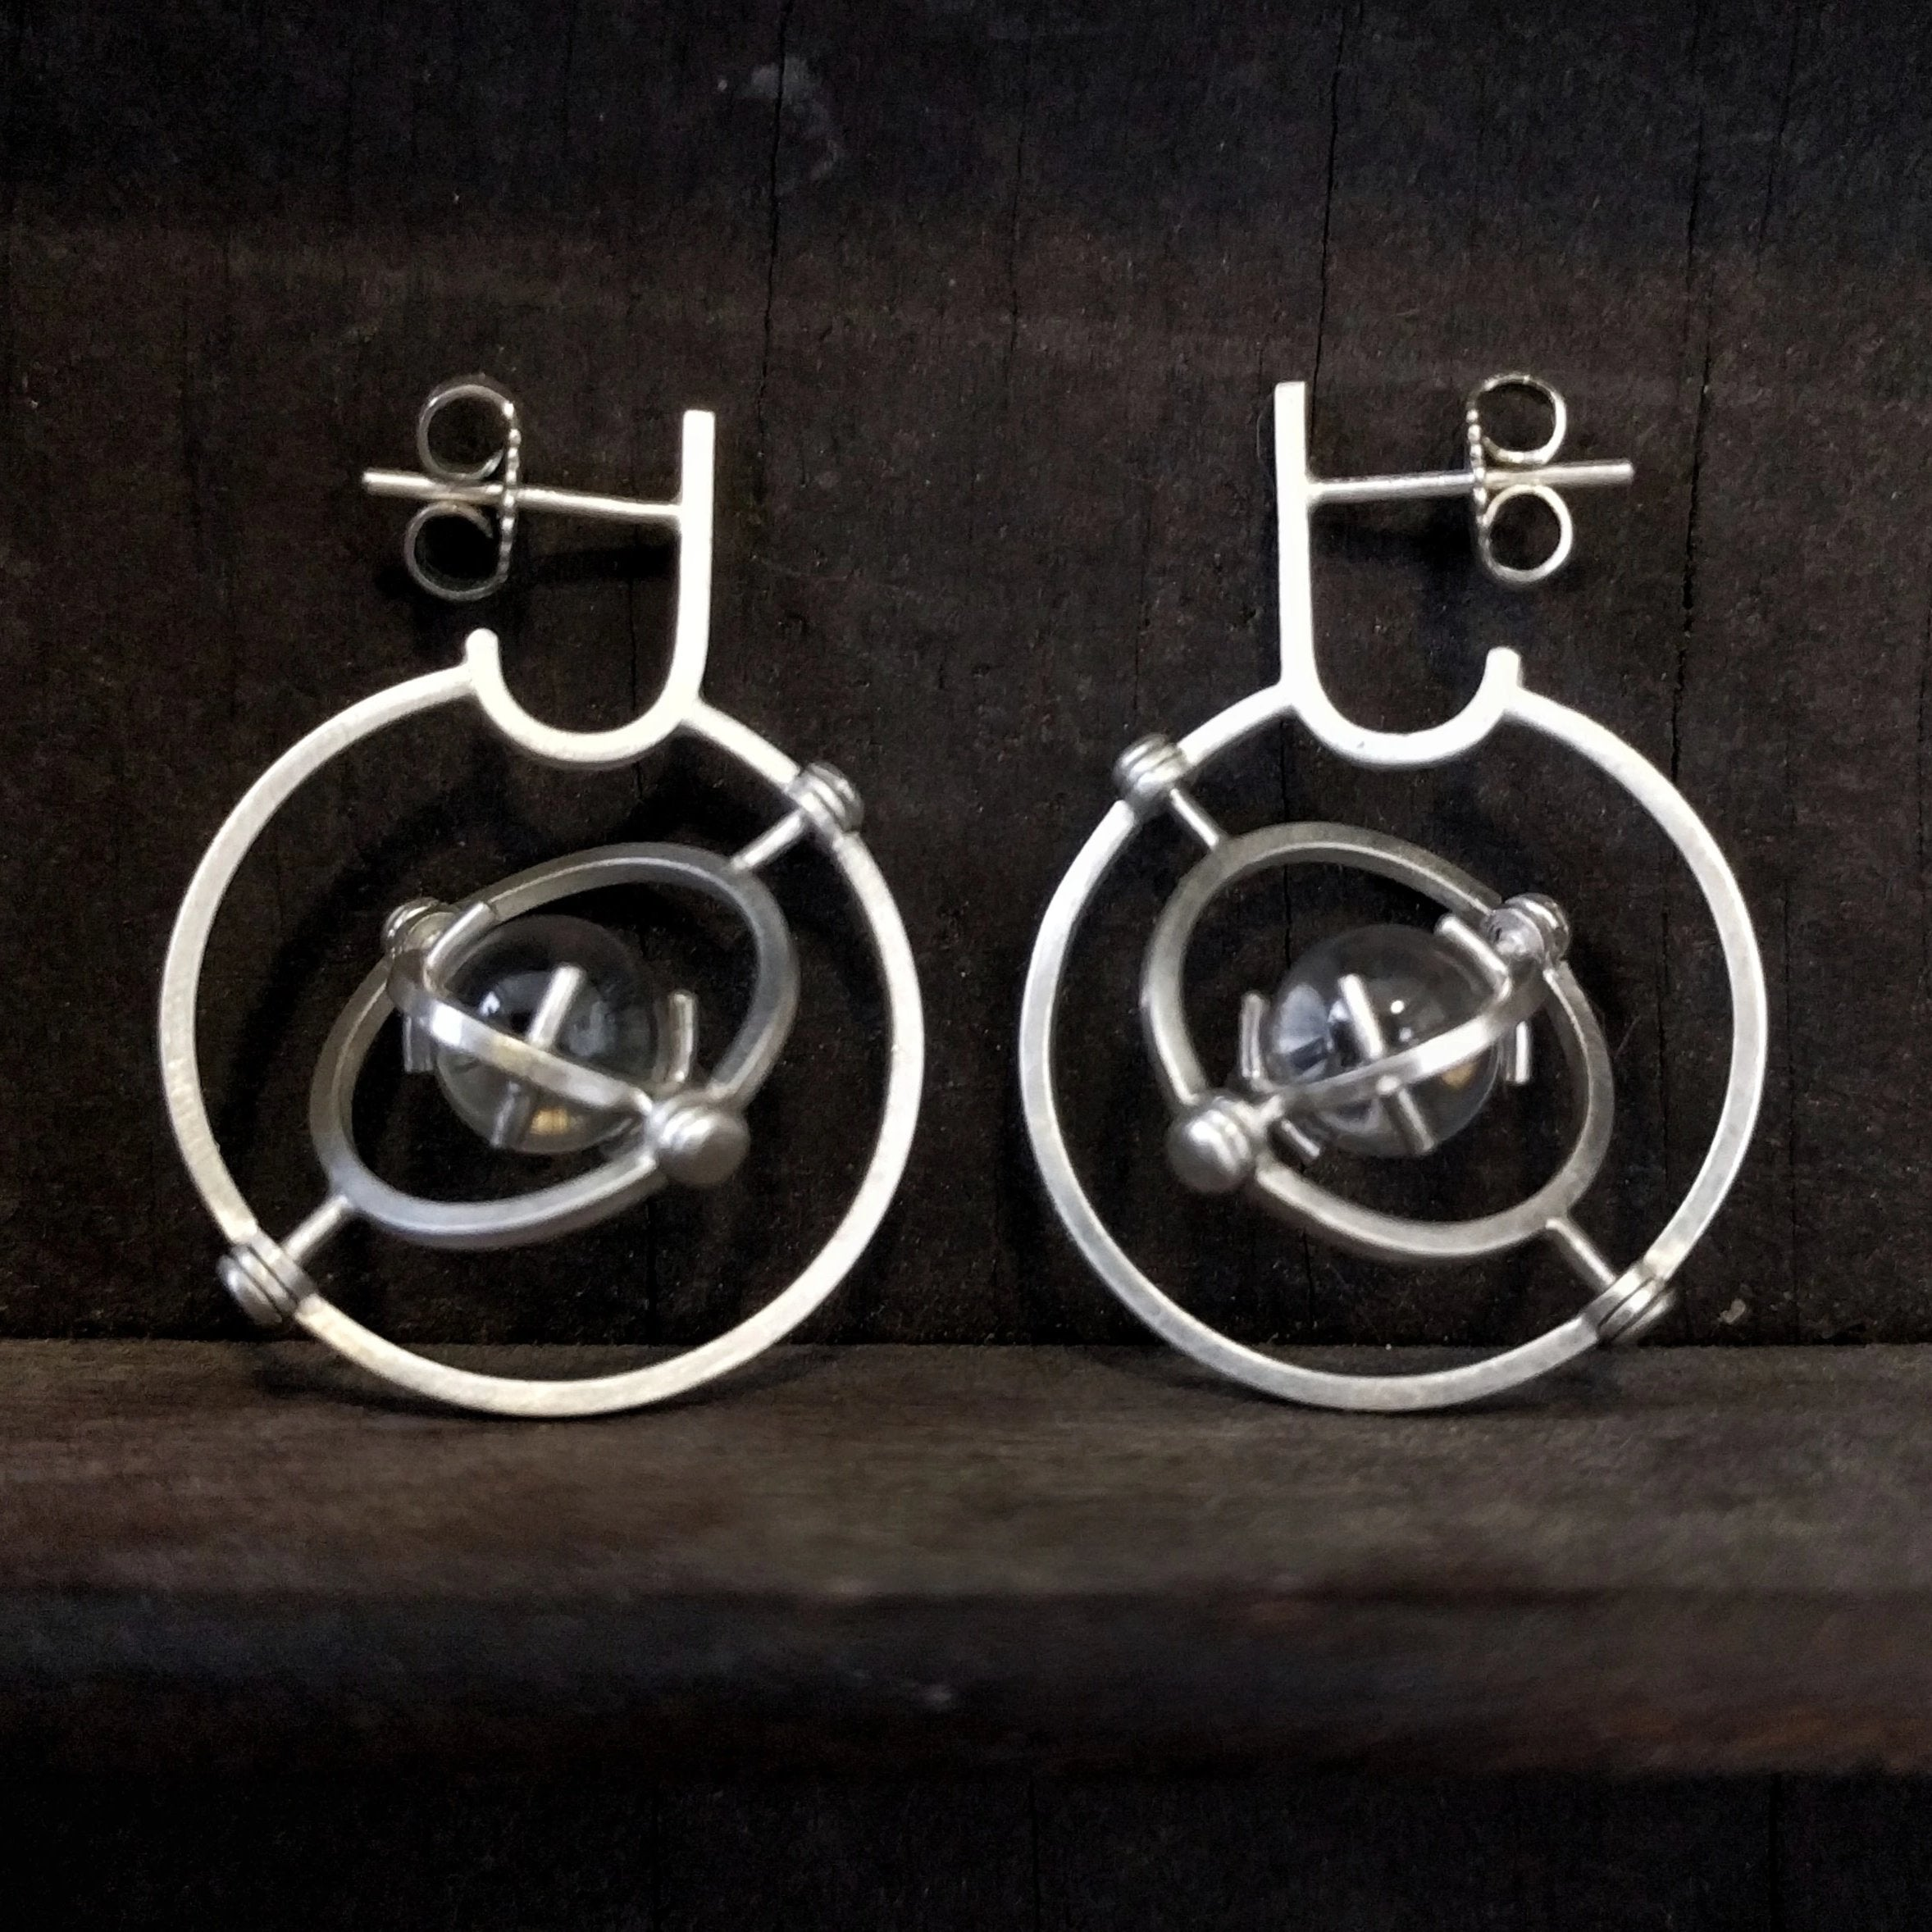 turning futuristic steampunk earrings